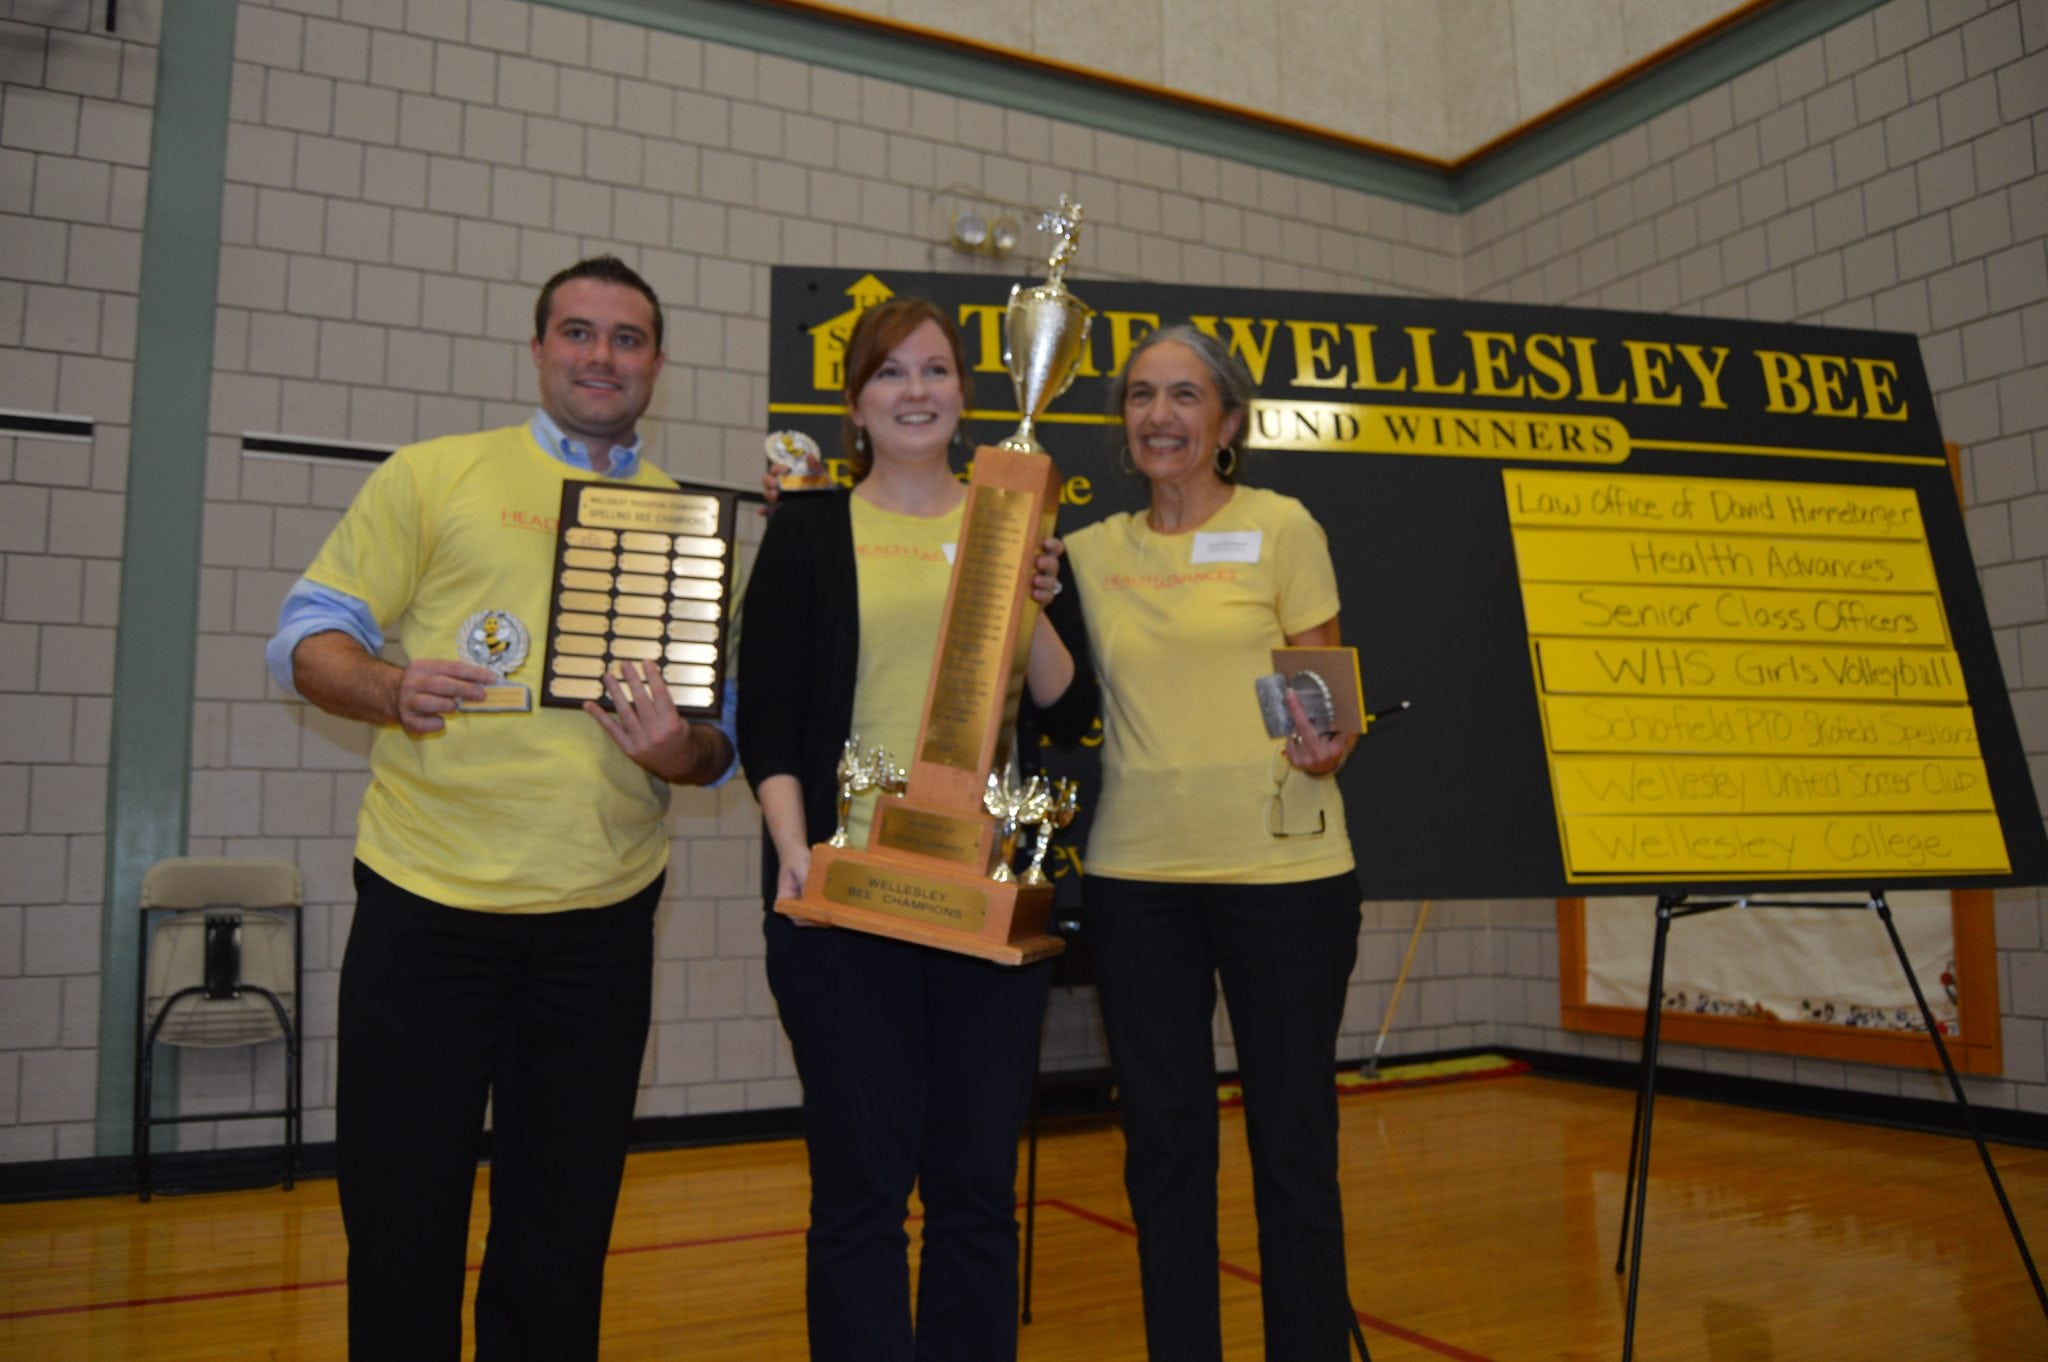 Spelling Bee, Winning team, Health Advances